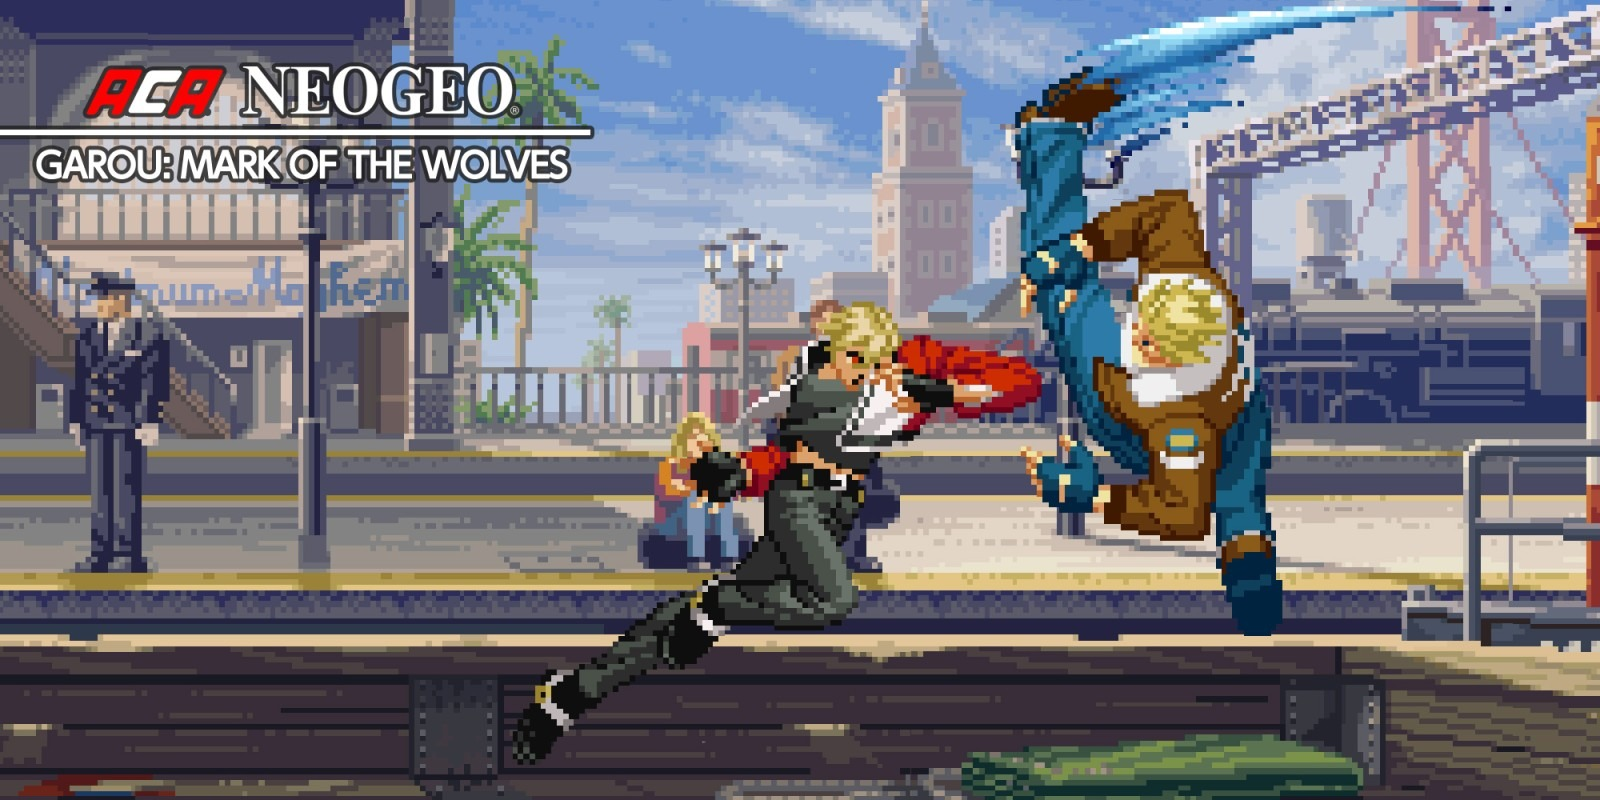 Le Retrrogaming avec Garou Mark of the Wolves sur SNK Neo Geo